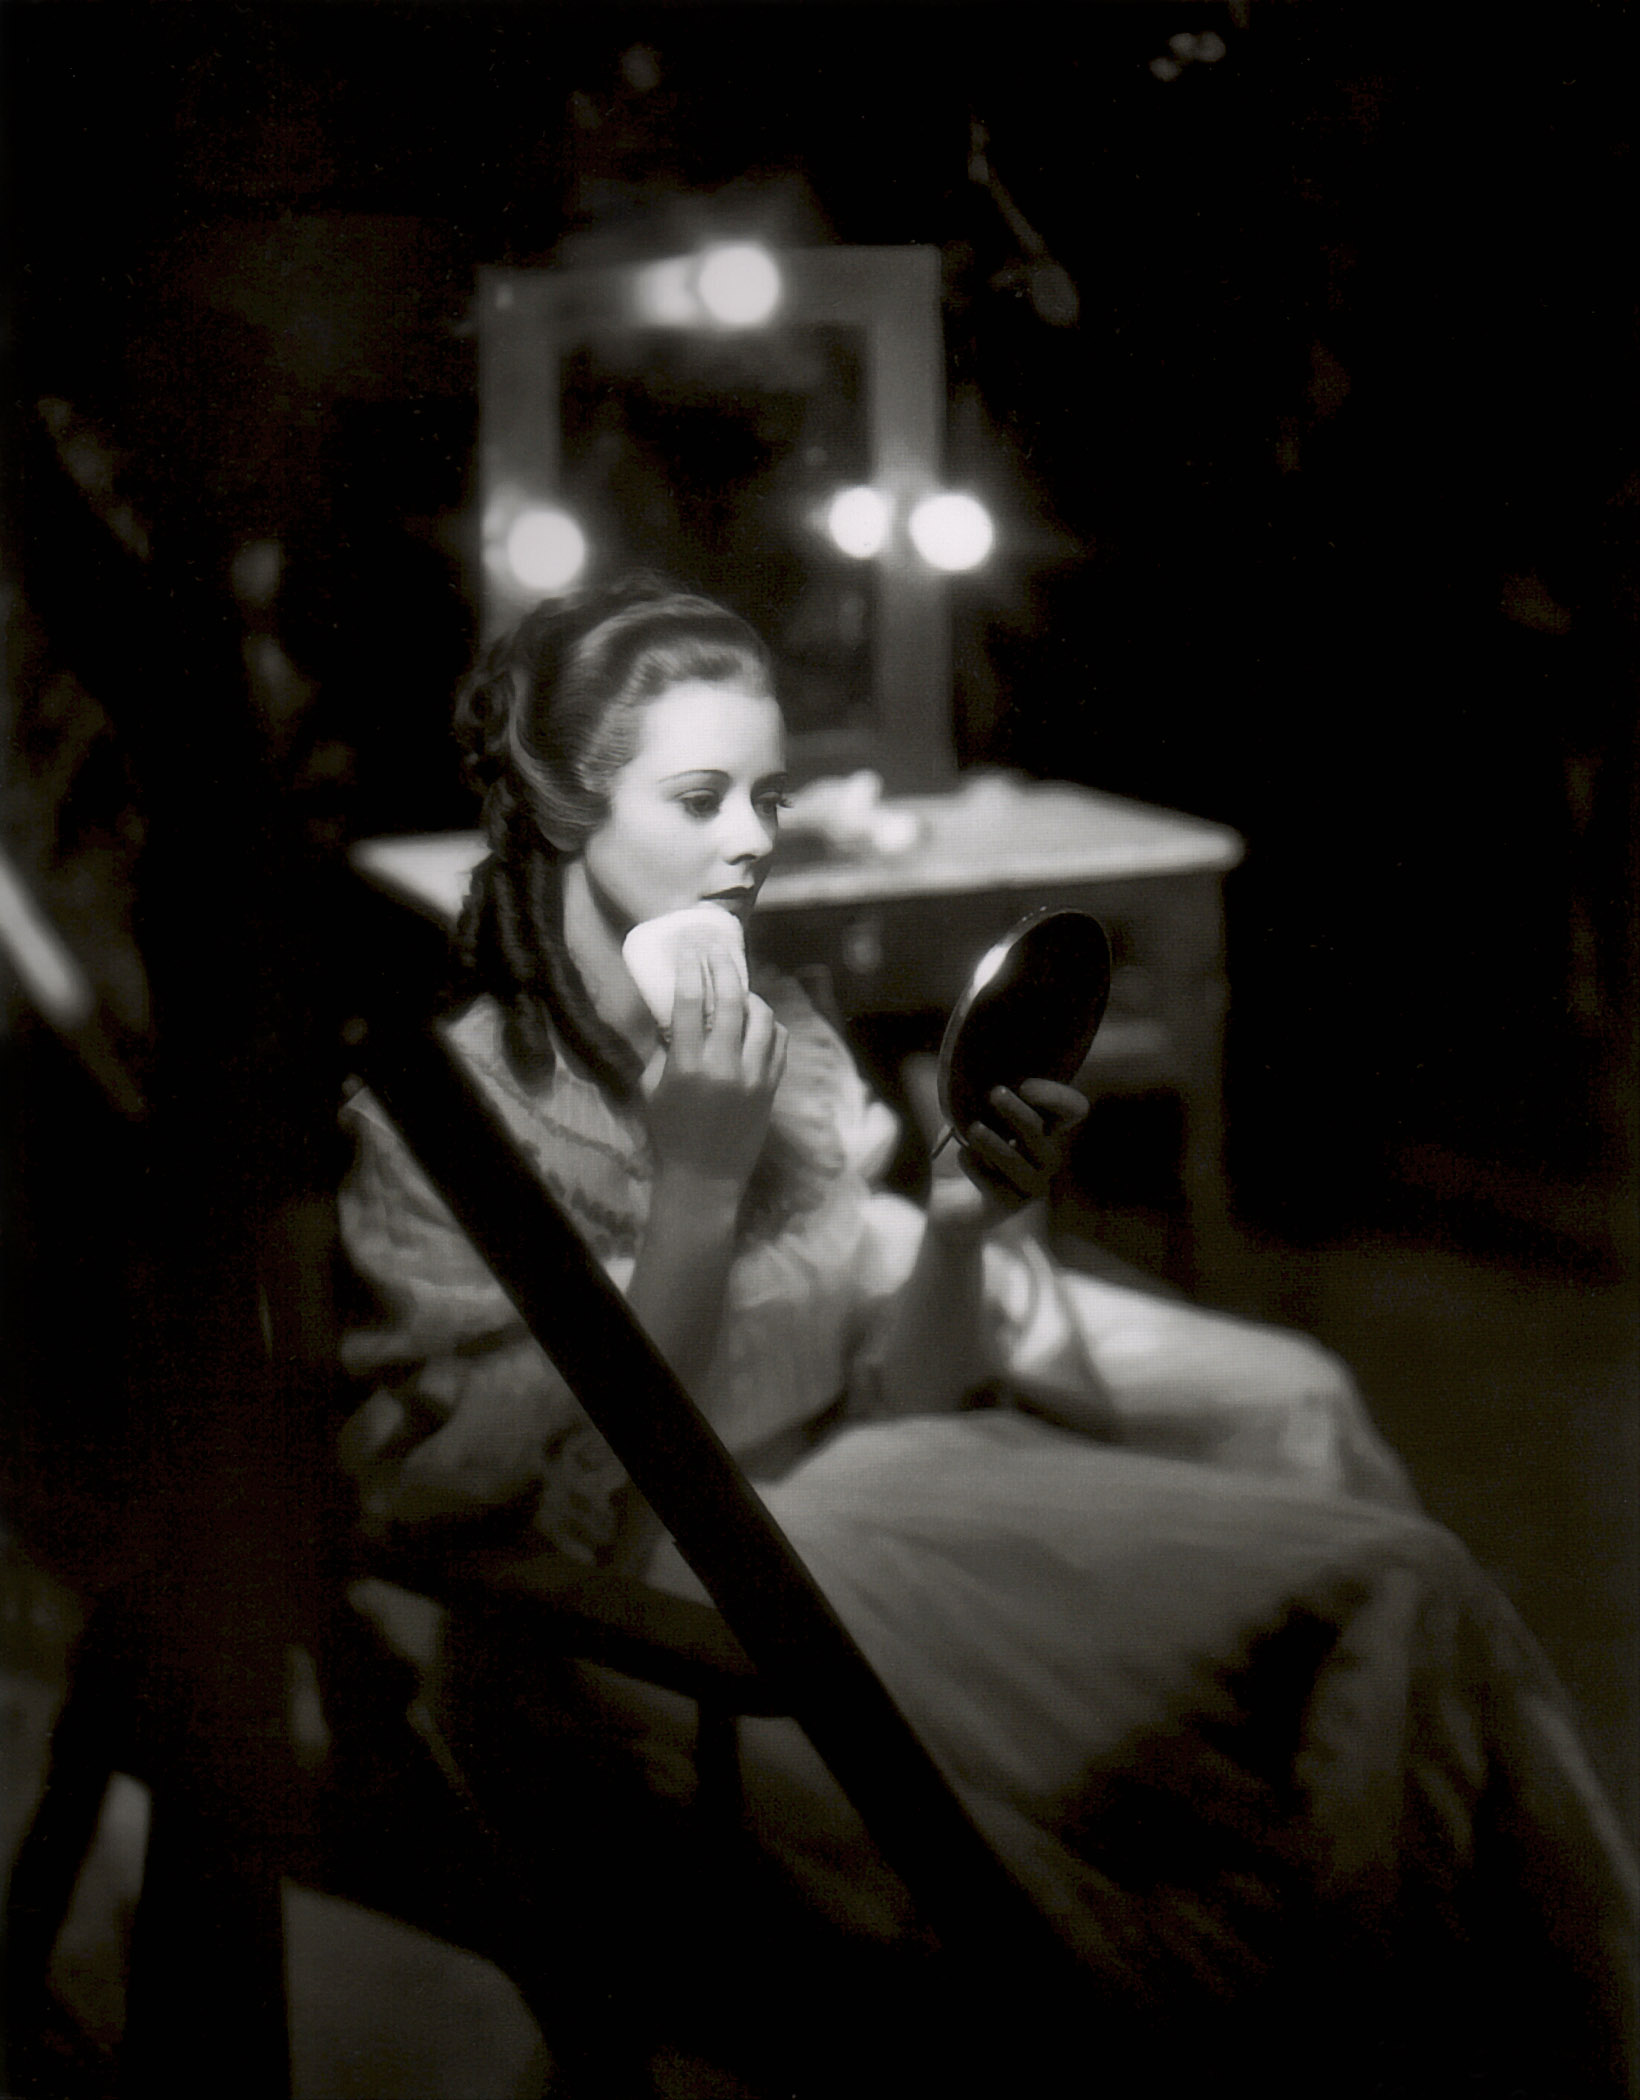 Heather Grace Angel was born in Oxford, England, on February 9, 1909.